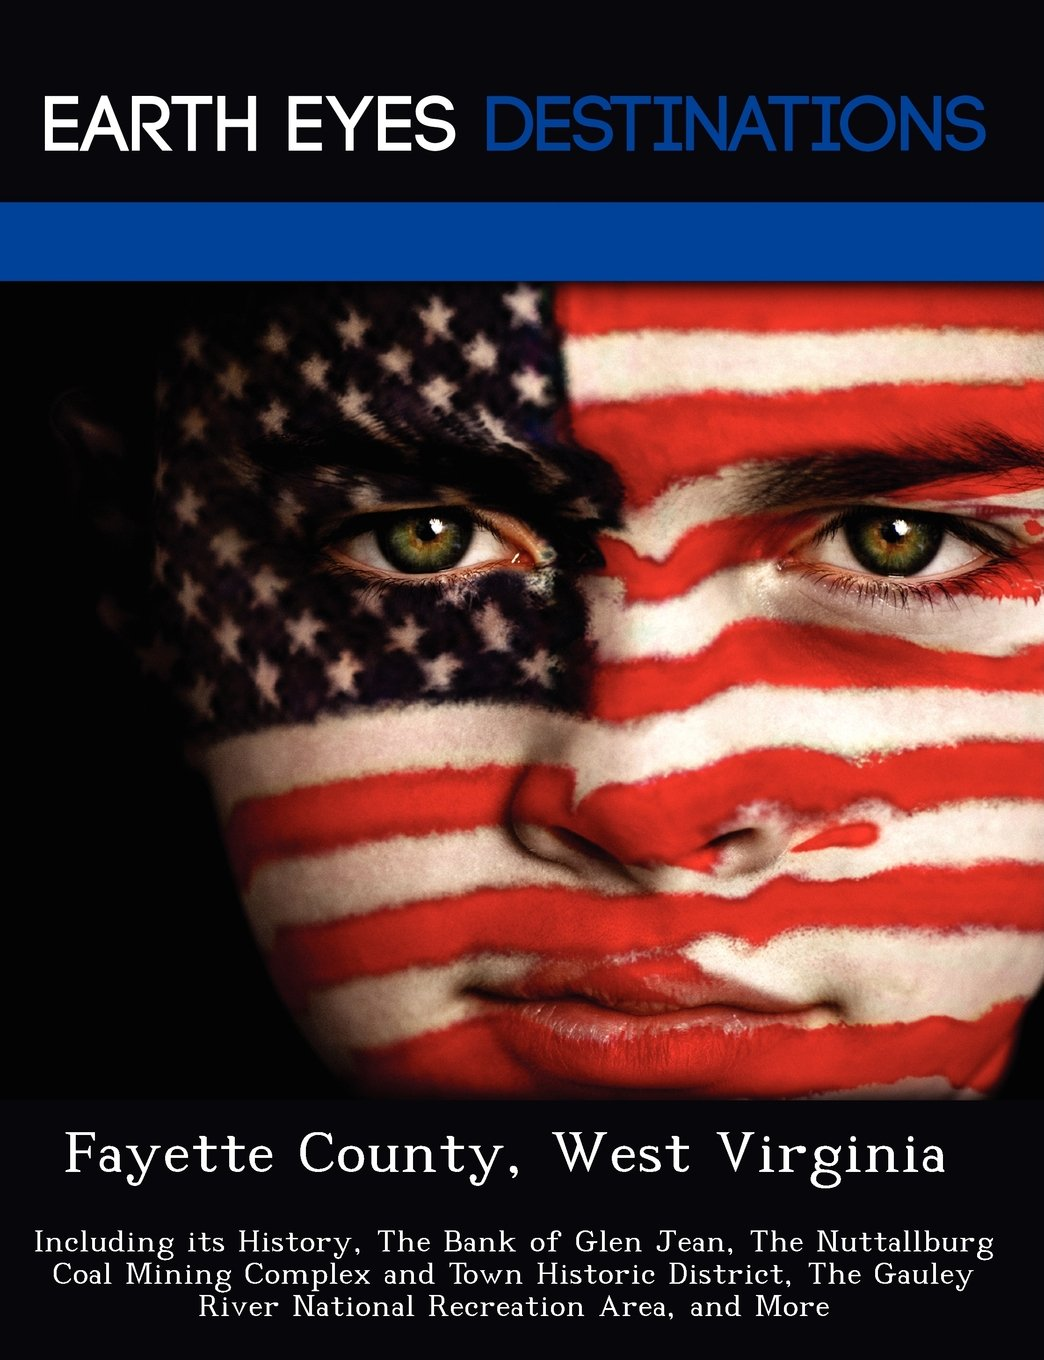 Fayette County, West Virginia: Including its History, The Bank of Glen Jean, The Nuttallburg Coal Mining Complex and Town Historic District, The Gauley River National Recreation Area, and More ePub fb2 ebook